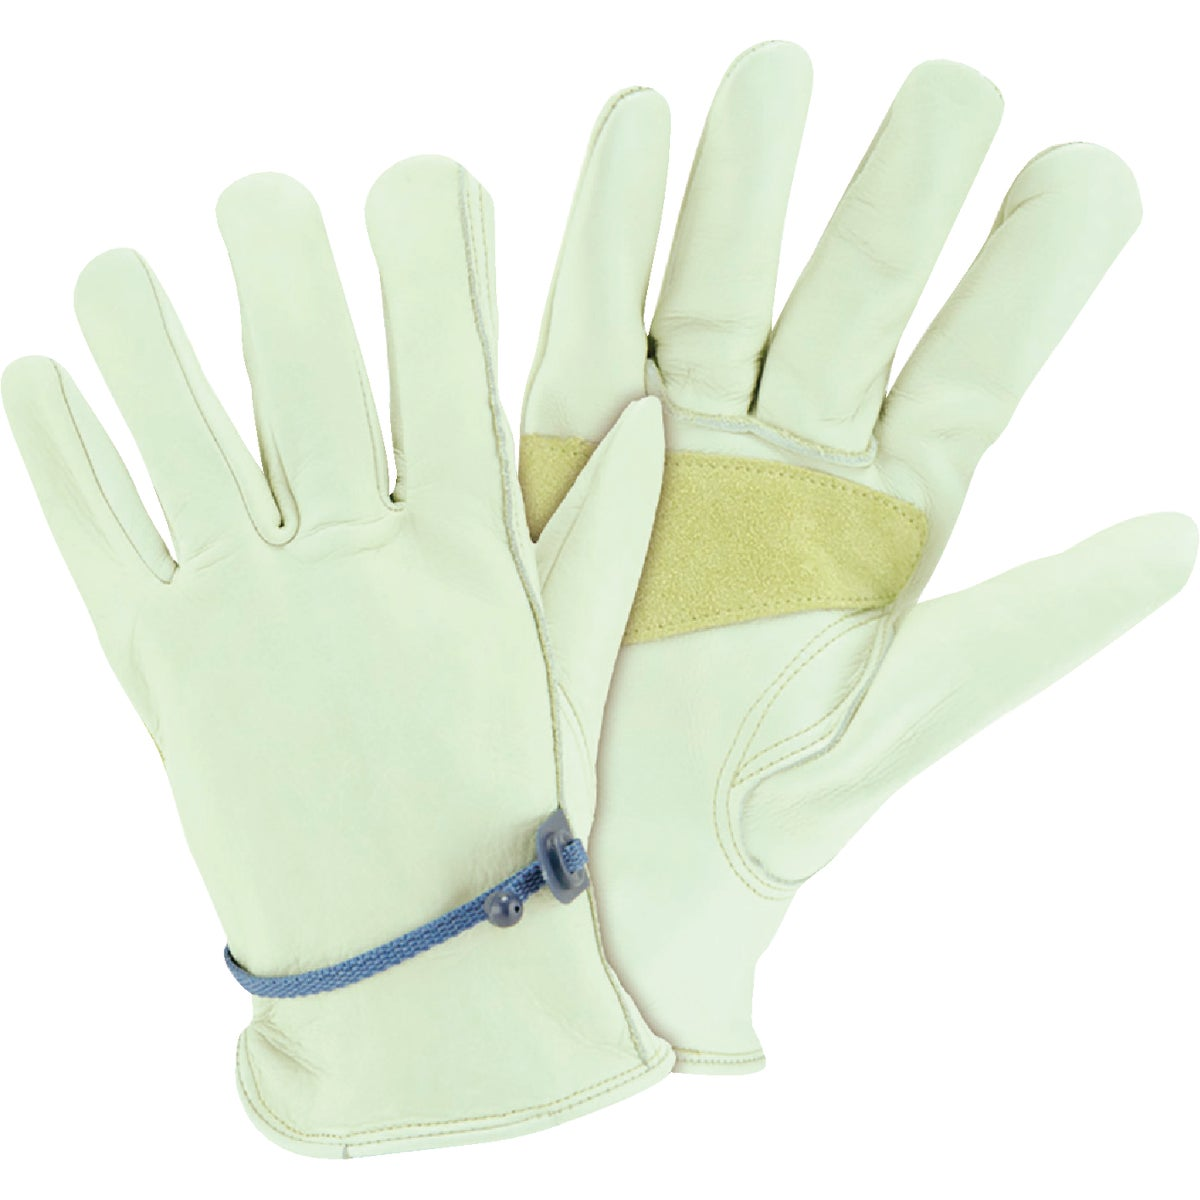 LRG GRAIN COWHIDE GLOVE - 1132L by Wells Lamont